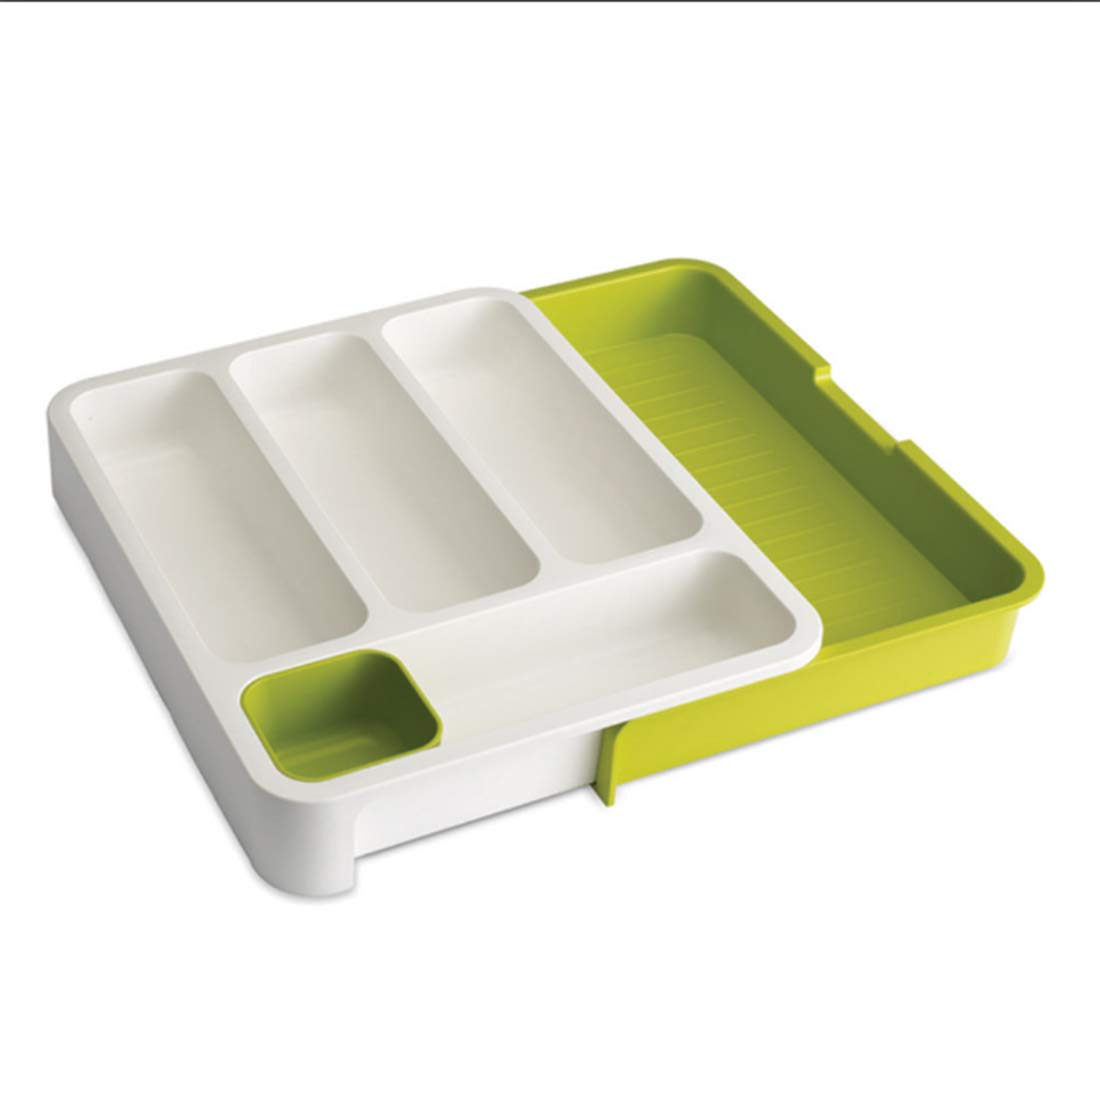 SHOW-WF Plastic Extendable Anti-Slip Cutlery Organiser Tray for Pull-Out Drawer Insert, Extends Up to 48 x 36.5 x 5.5cm White/Green